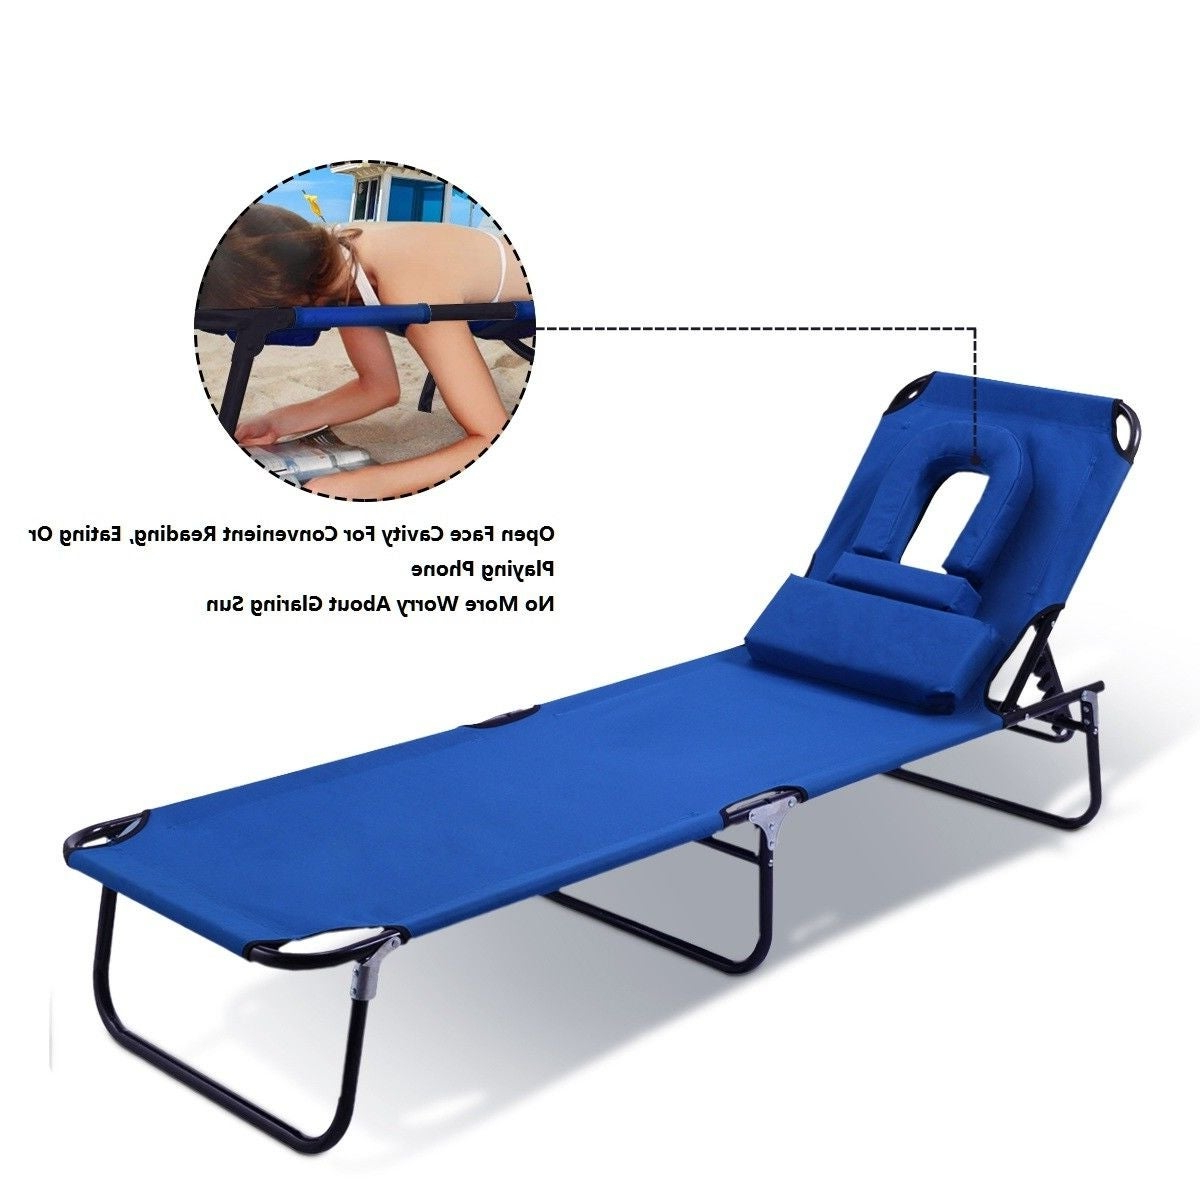 Current Outdoor Yard Pool Recliner Folding Lounge Table Chairs For Costway Patio Foldable Chaise Lounge Chair Bed Outdoor Beach Camping  Recliner Pool Yard (View 4 of 25)